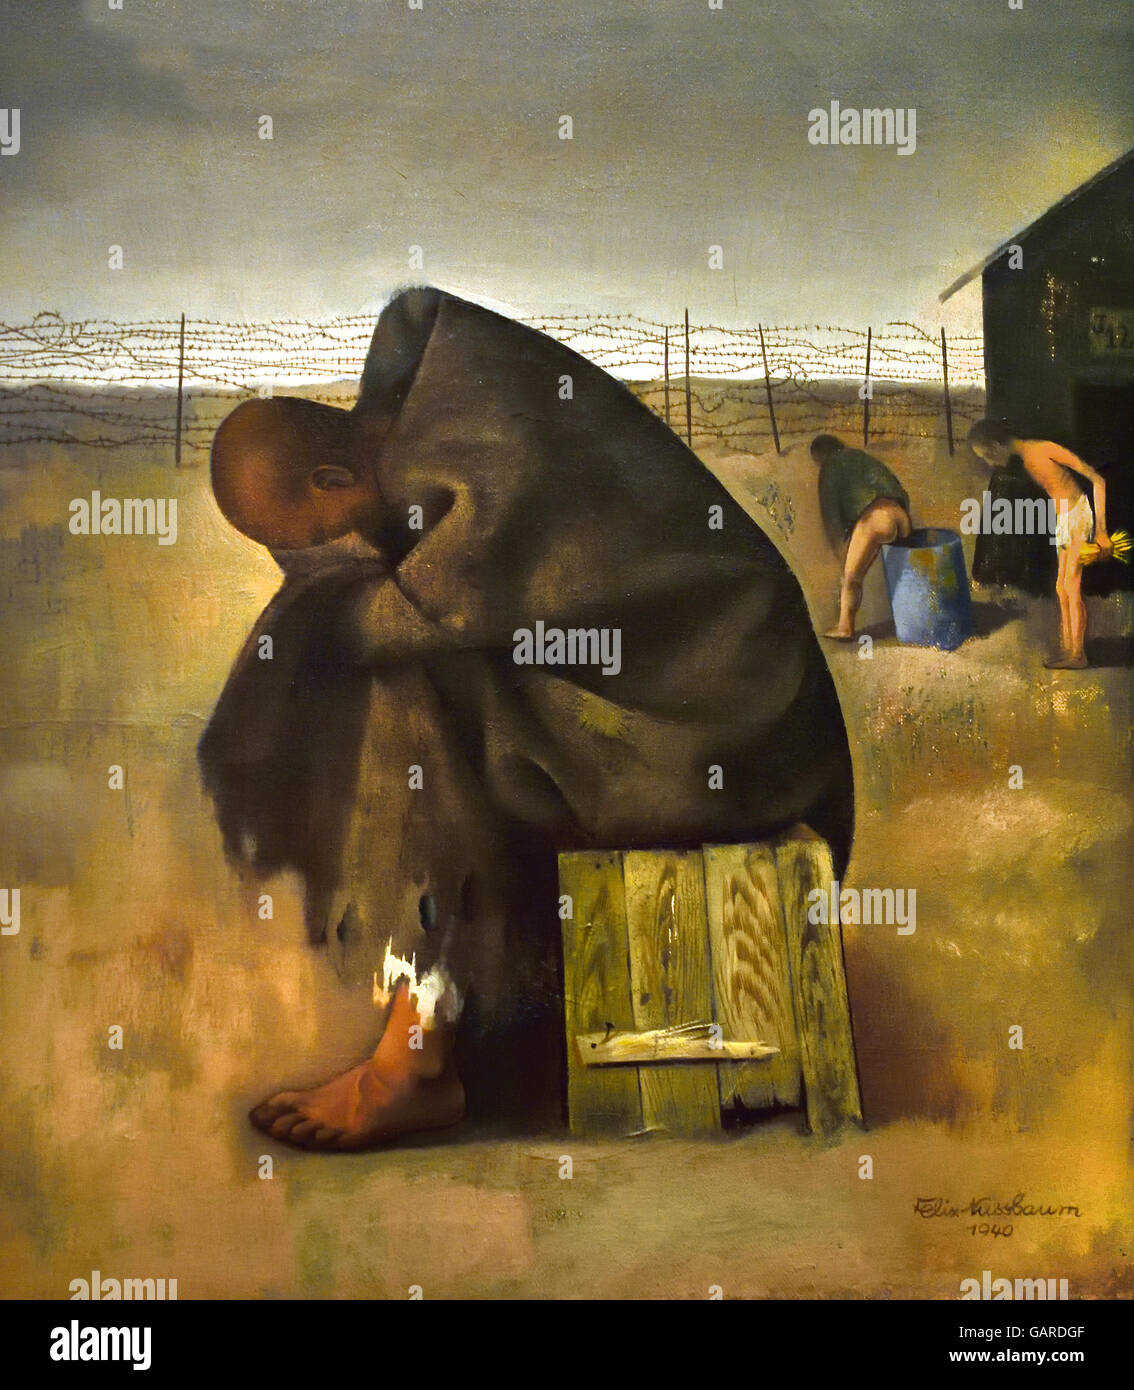 Prisoners – 1940 Felix Nussbaum 1904 – 1944 Auschwitz,German Jewish painter Nazi Germany Jewish surrealist painter. - Stock Image